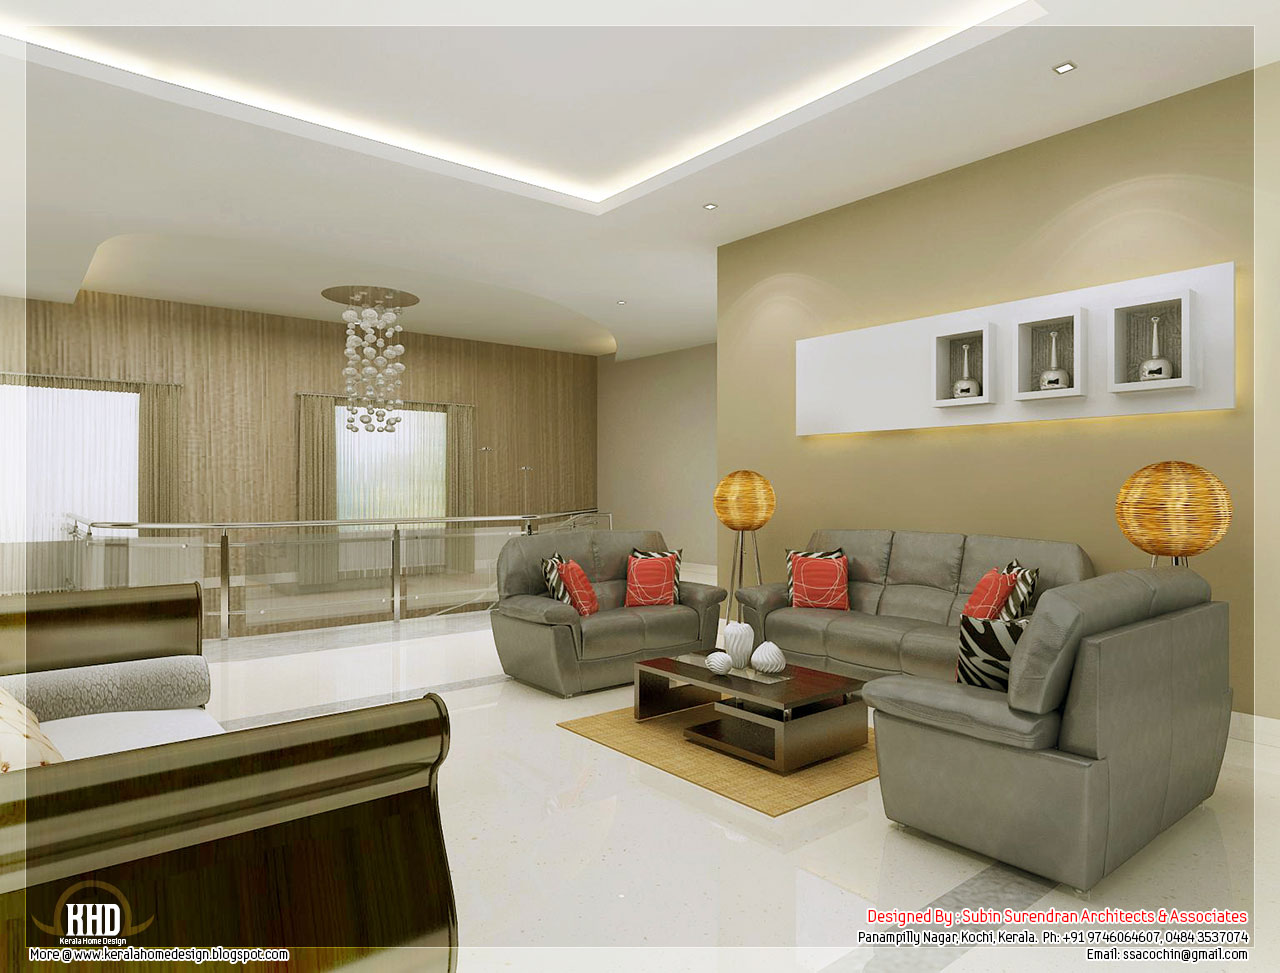 Awesome 3d interior renderings house design plans for Drawing room interior ideas